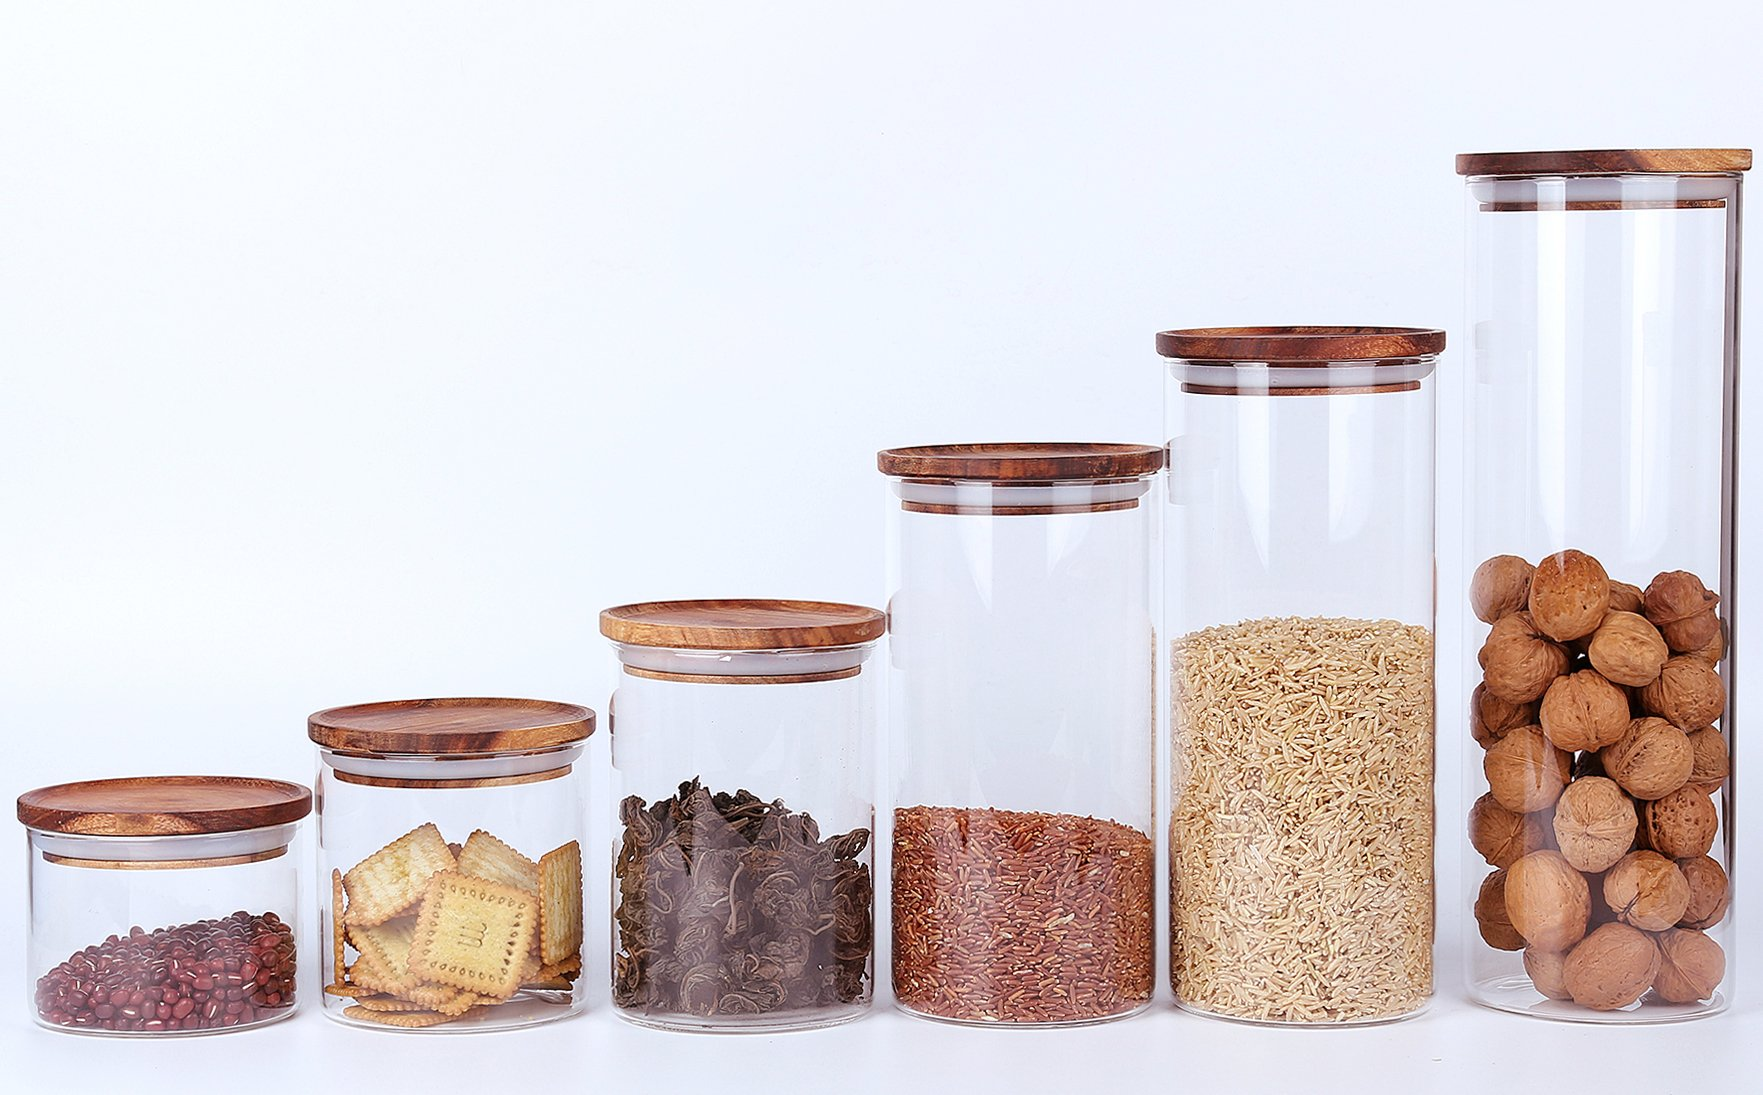 Clear Glass Canisters Jars Containers Set for Food Storage with Airtight Wood Lids for Kitchen,BPA Free,18oz,1-Piece set,Tea Coffee Canister Coffee Bean Jar Cookies,Flour,Sugar Container